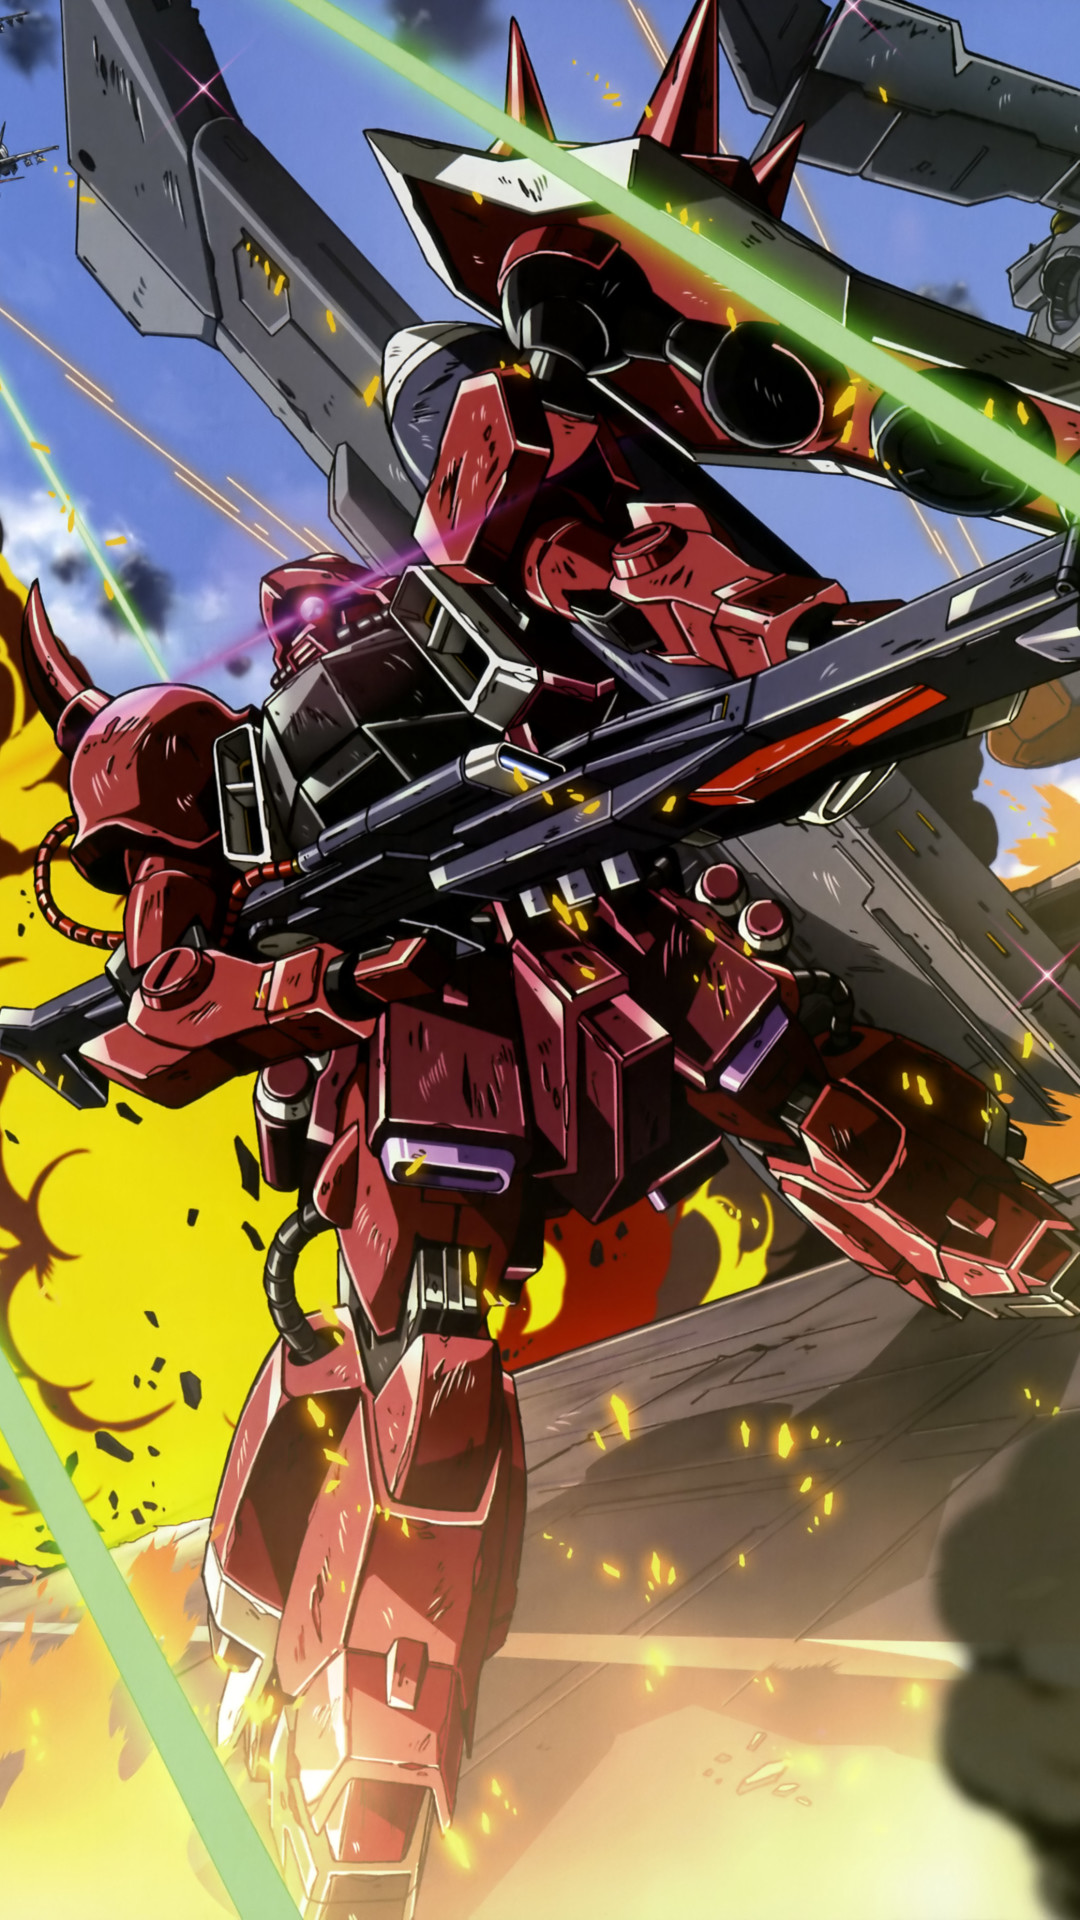 1080x1920 Anime / Mobile Suit Gundam Seed Destiny () Mobile Wallpaper